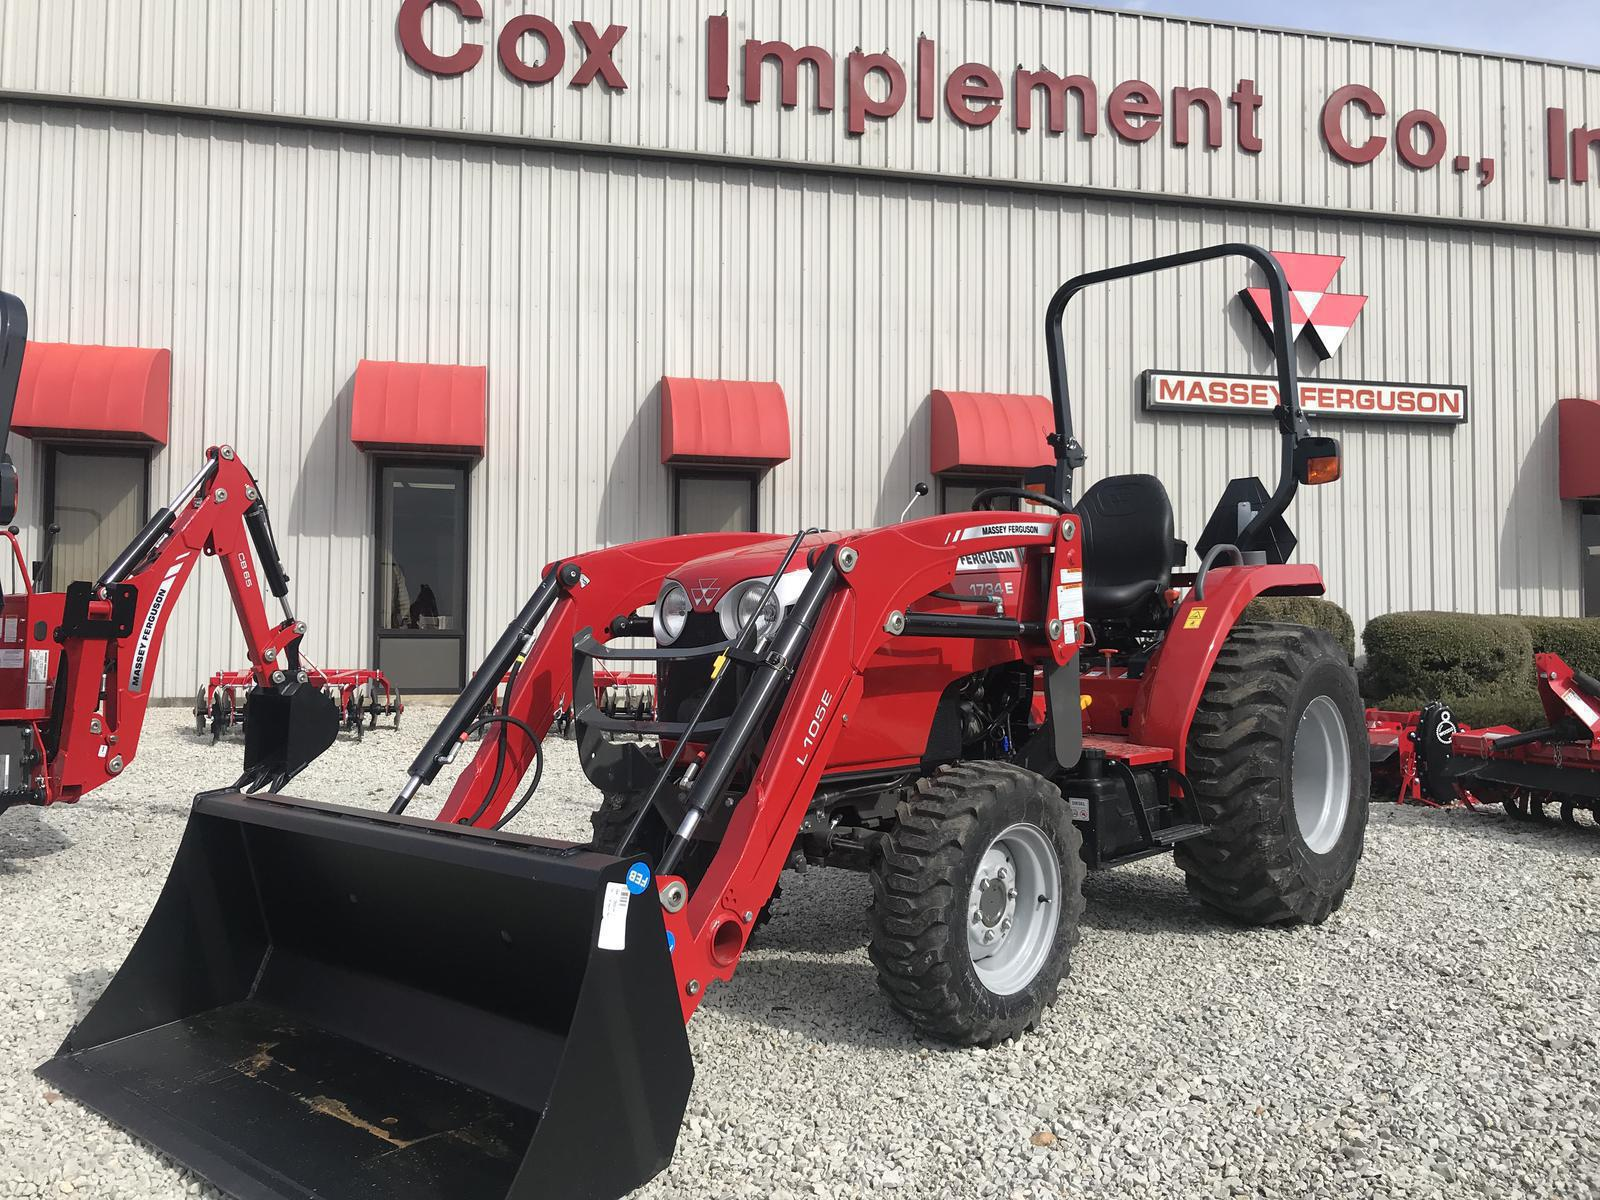 Inventory from MEB TRAILERS and Massey Ferguson Cox